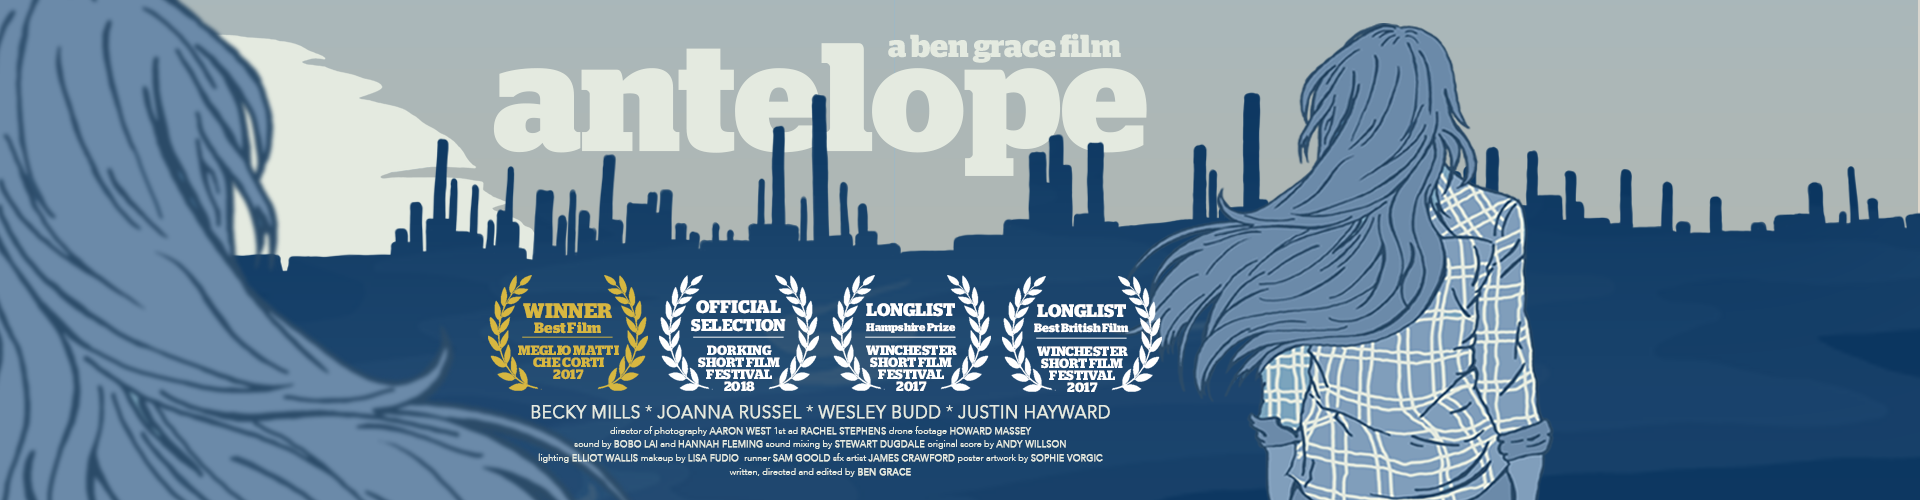 Antelope |Ben Grace Films | BenGrace.co.uk